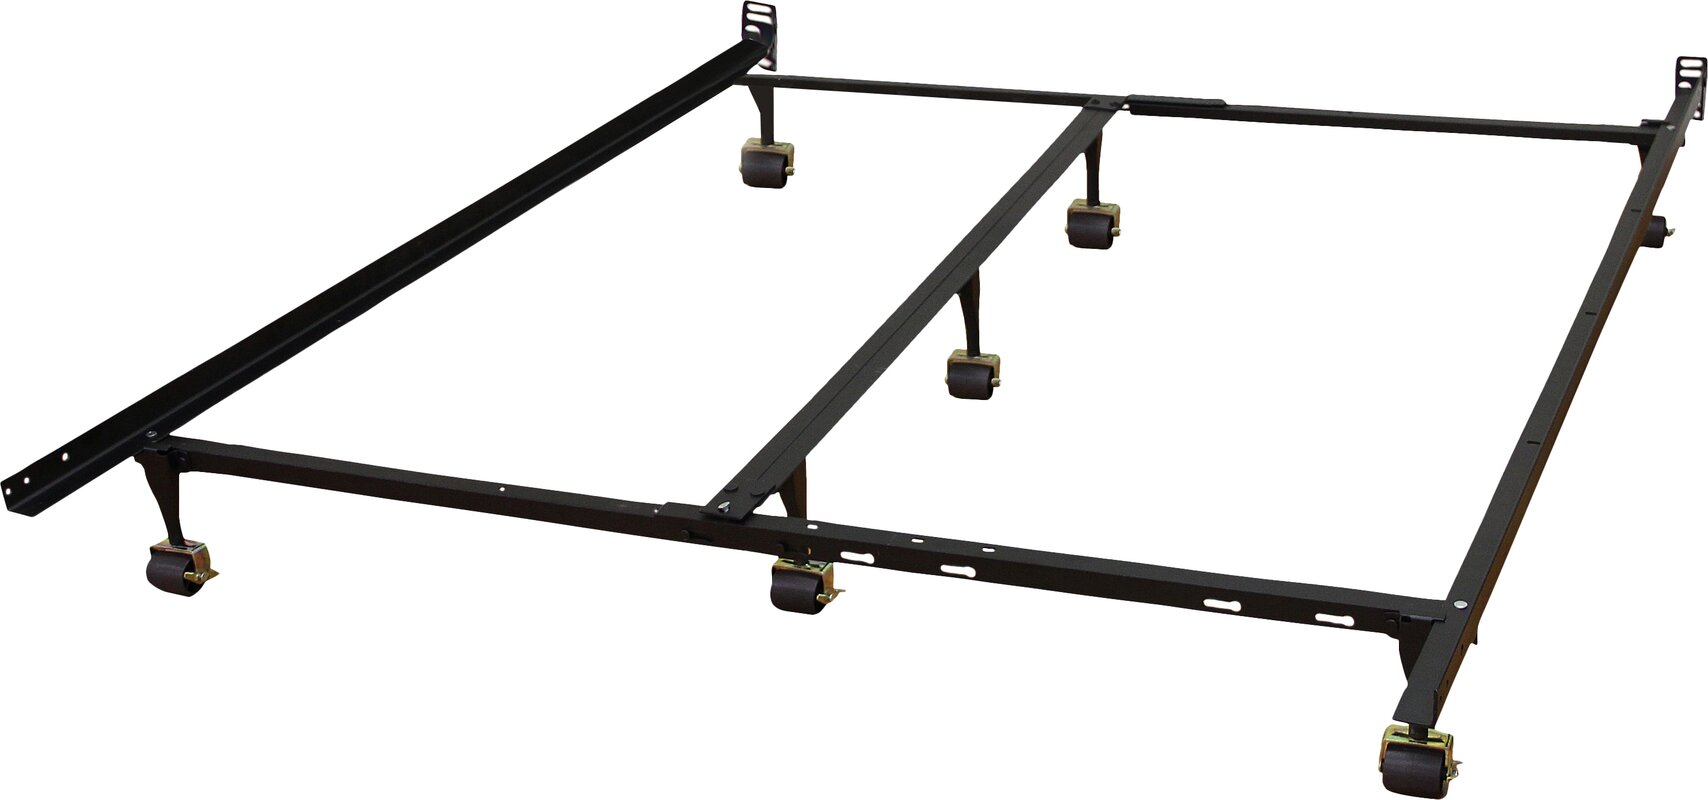 heavy duty adjustable metal bed frame with double rail center bar and 7locking rug